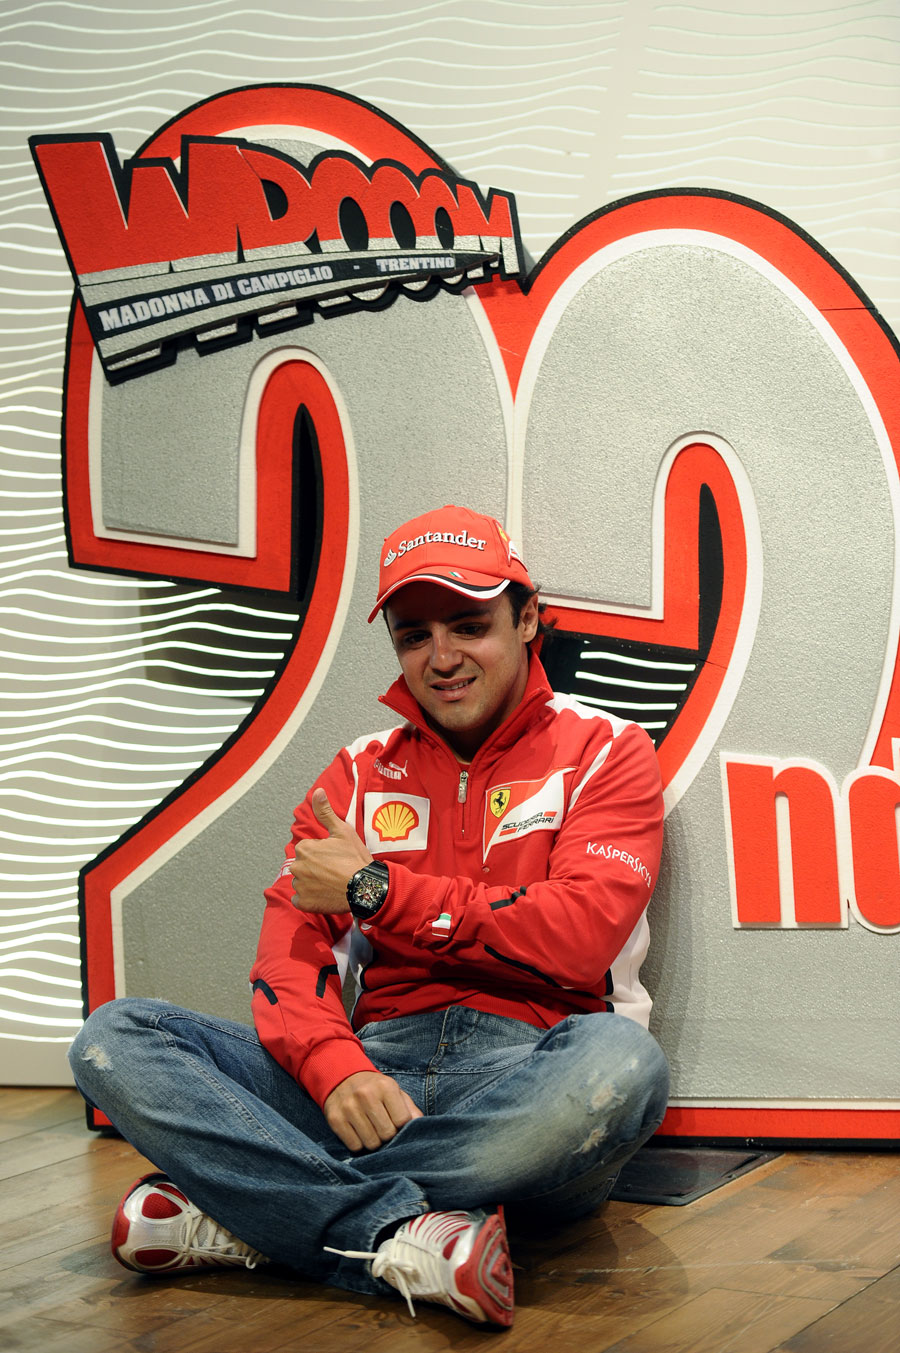 Felipe Massa poses for a photo during a press conference at Ferrari's annual media event Wrooom